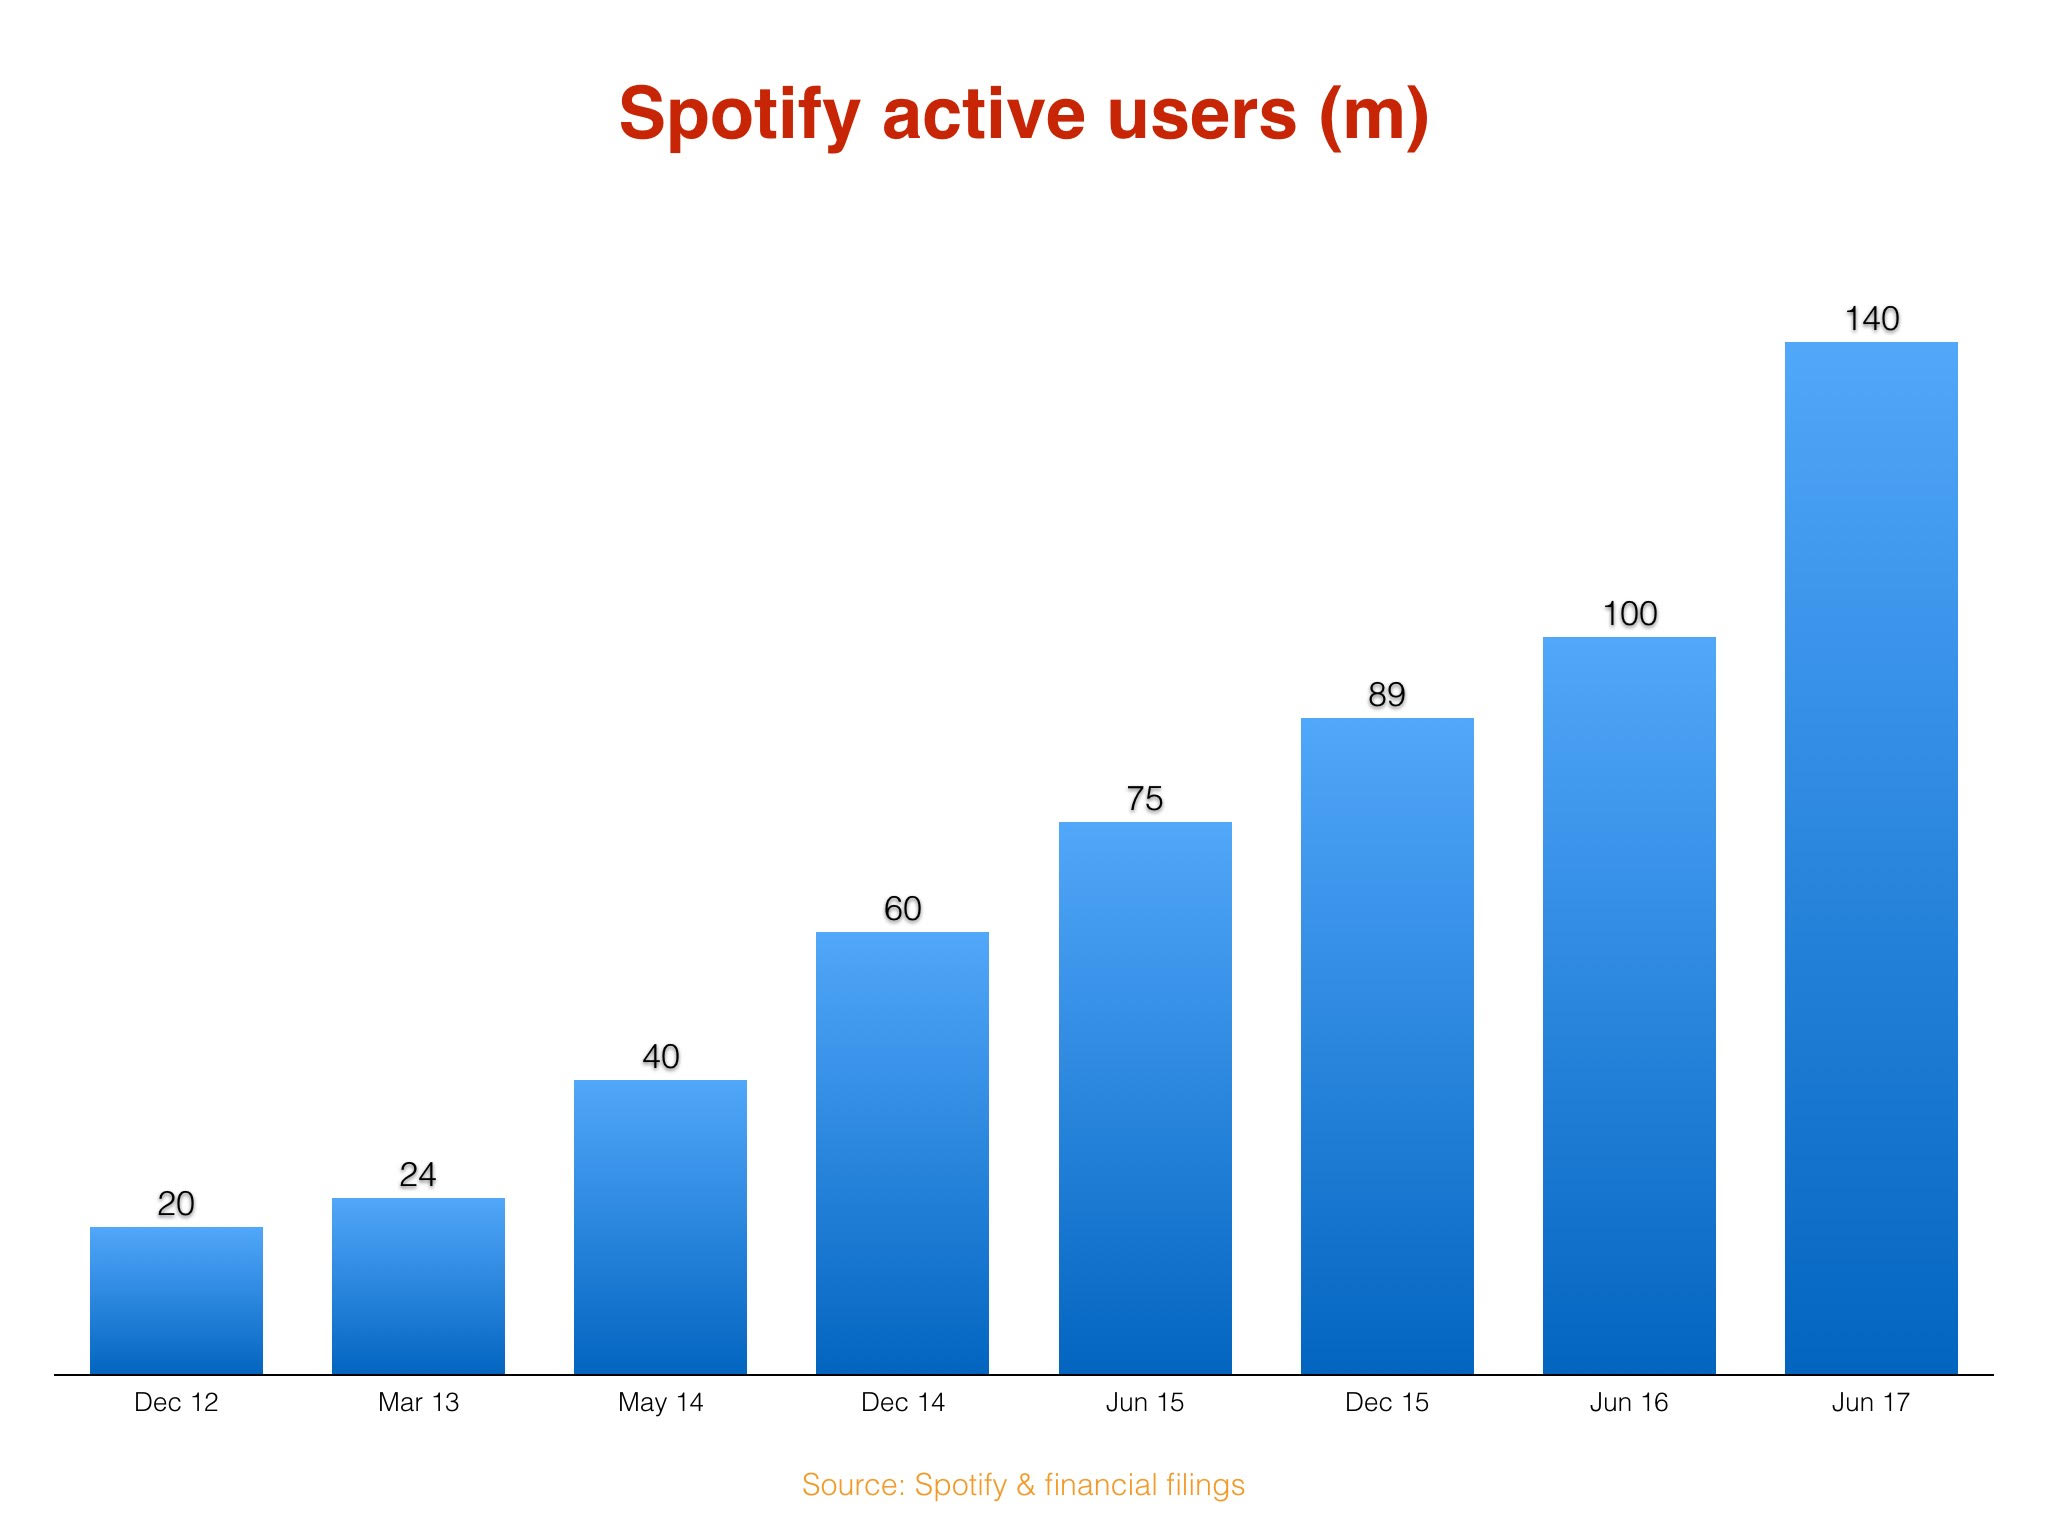 Spotify Announced 140 Million Monthly Users